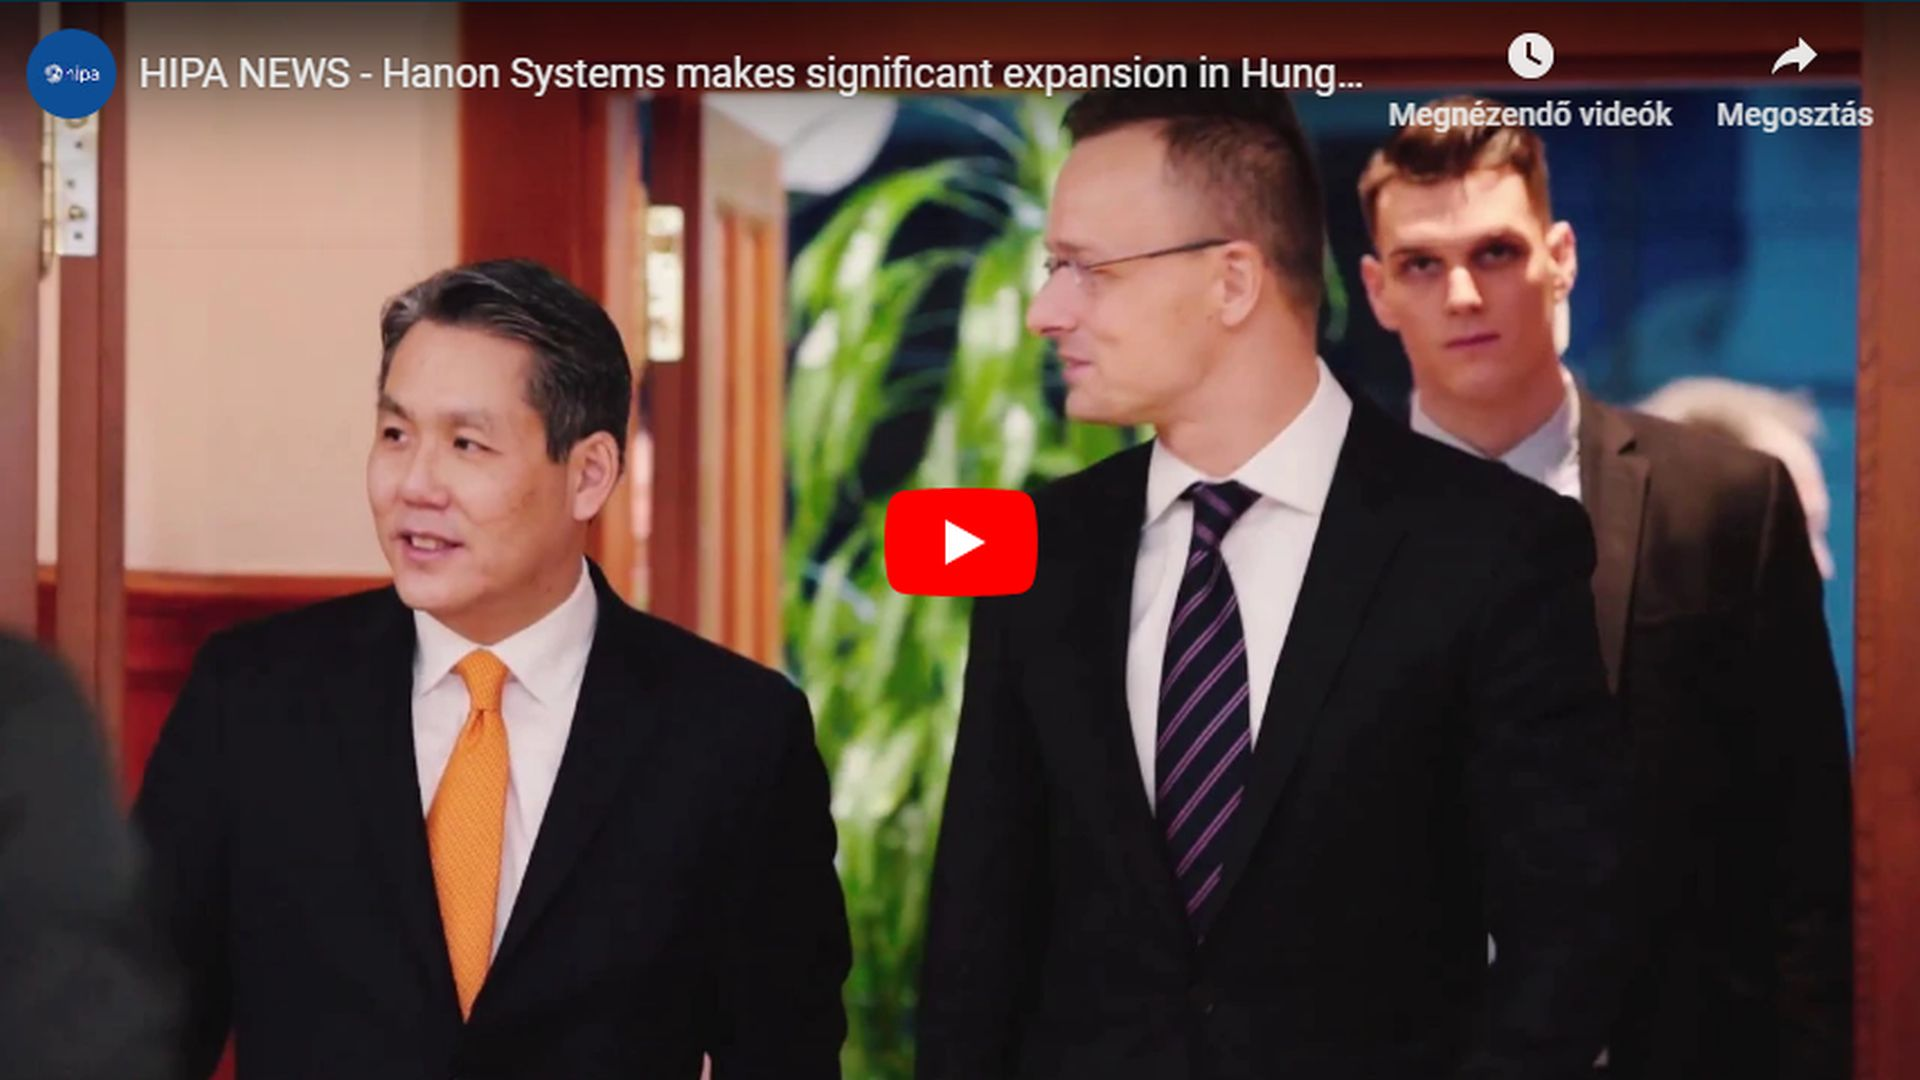 Hanon Systems to extend capacity and establish new sites in across Hungary - VIDEO REPORT